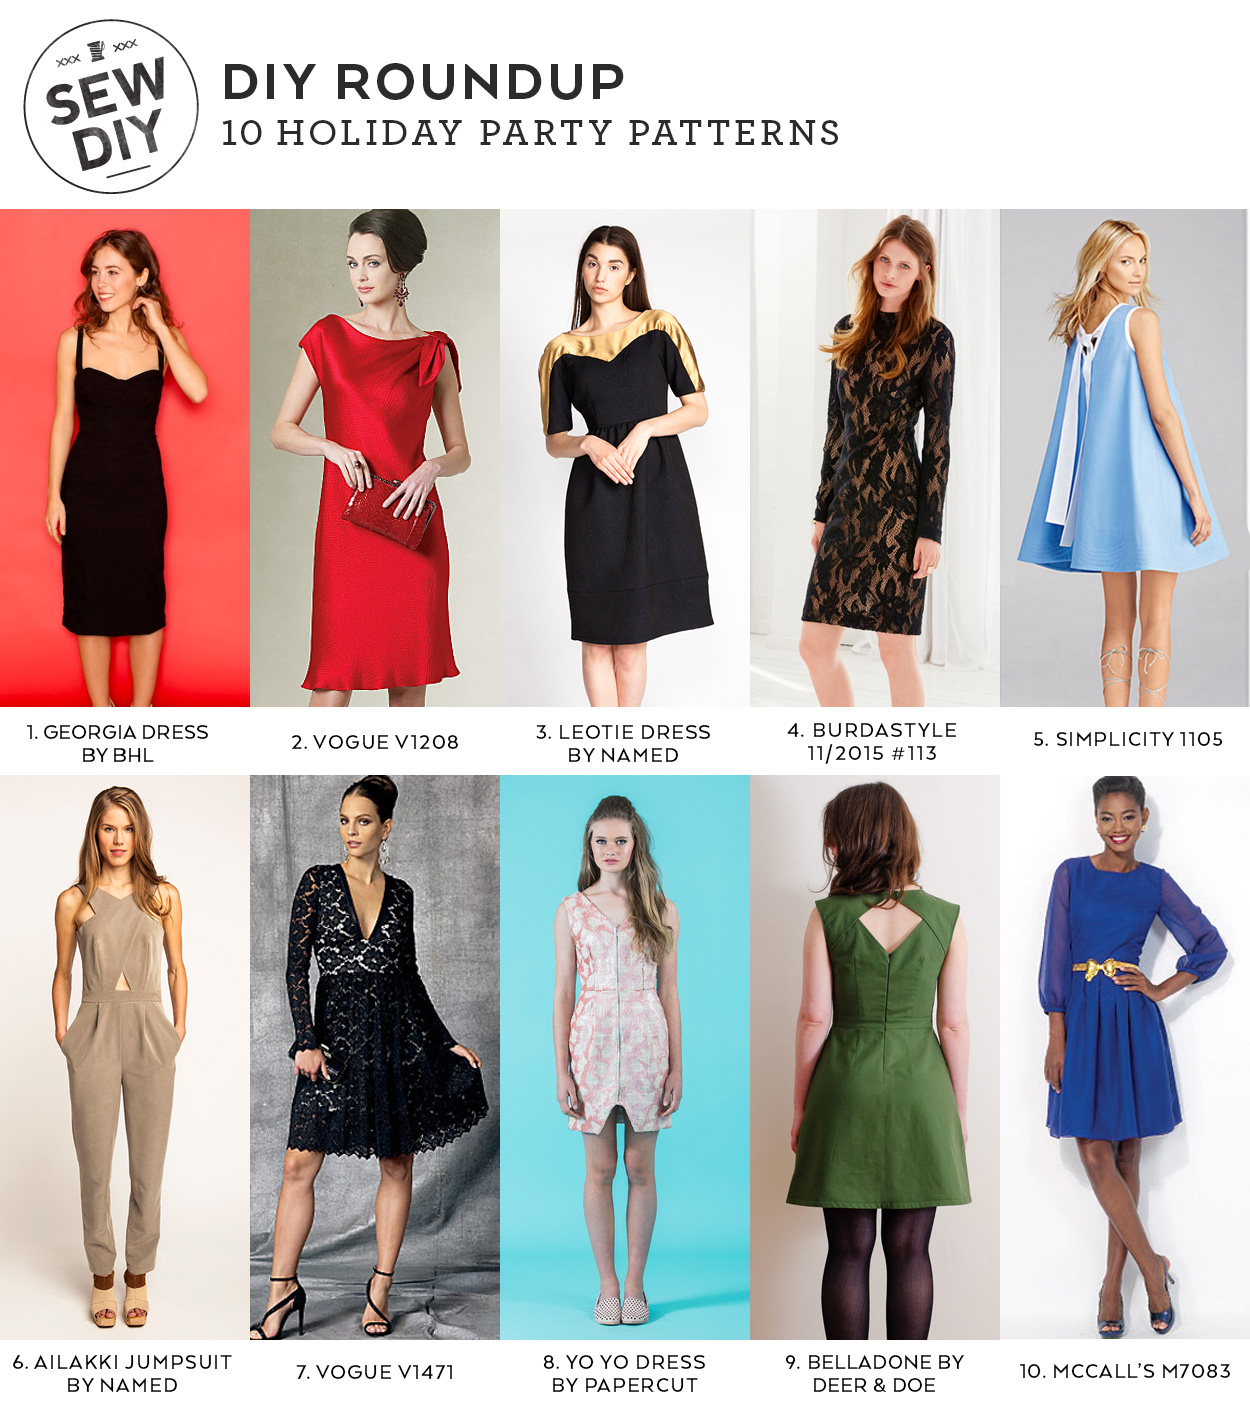 10 Holiday Party Dress Sewing Patterns | Sew DIY